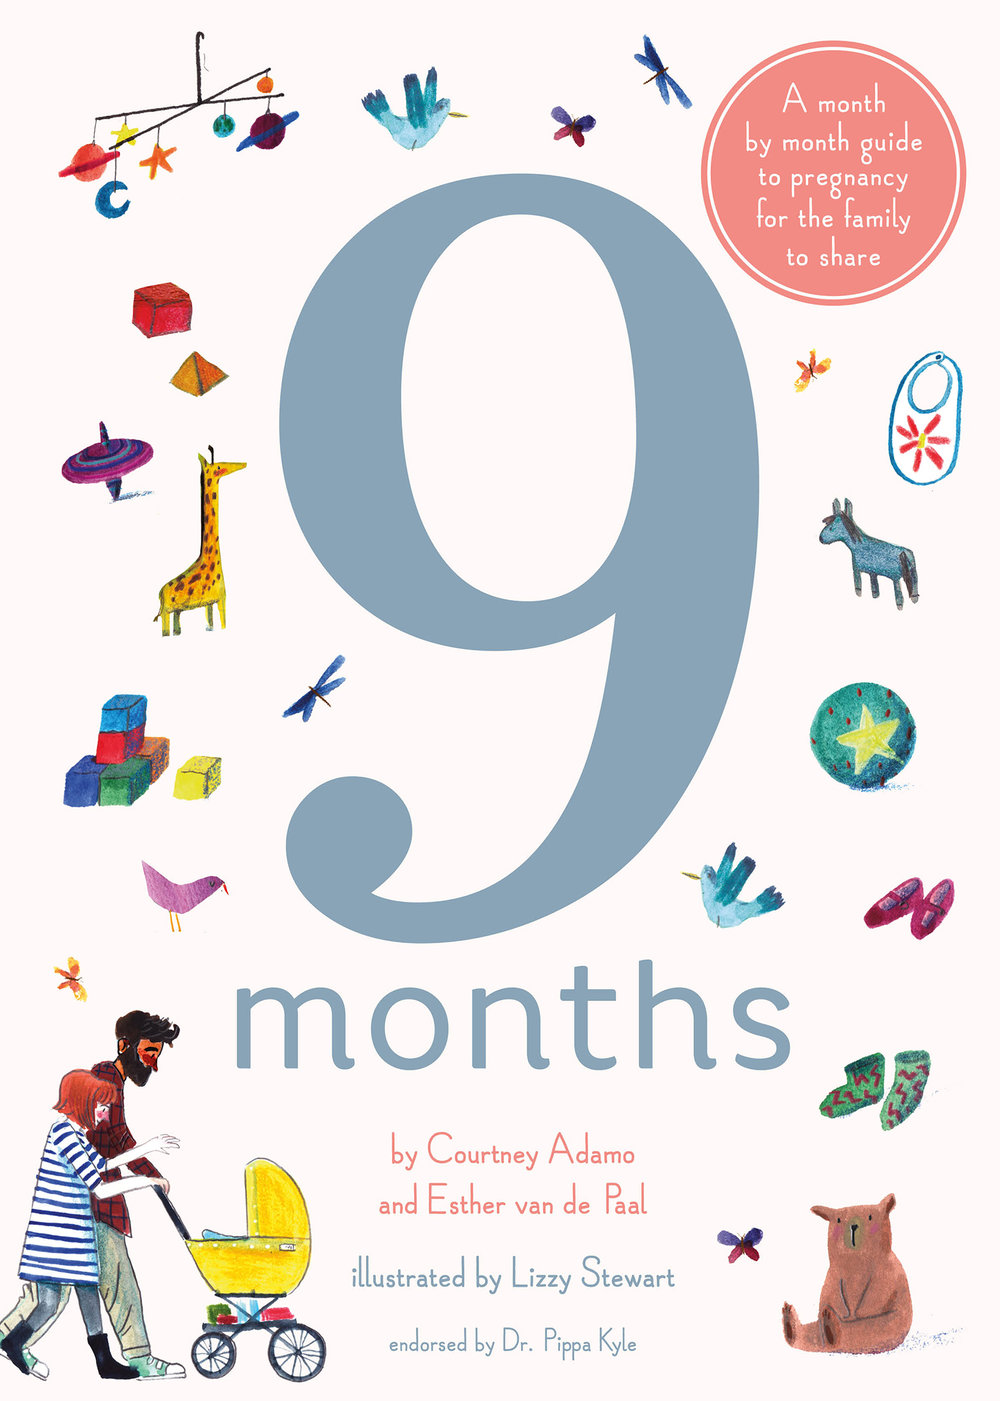 9 MONTHS by  Courtney Adamo  and  Esther van de Paal , illustrated by  Lizzy Stewart  – Frances Lincoln Children's Books, 2017 ages 2 to 10 years /  picture books  +  nonfiction ,  s.t.e.m.